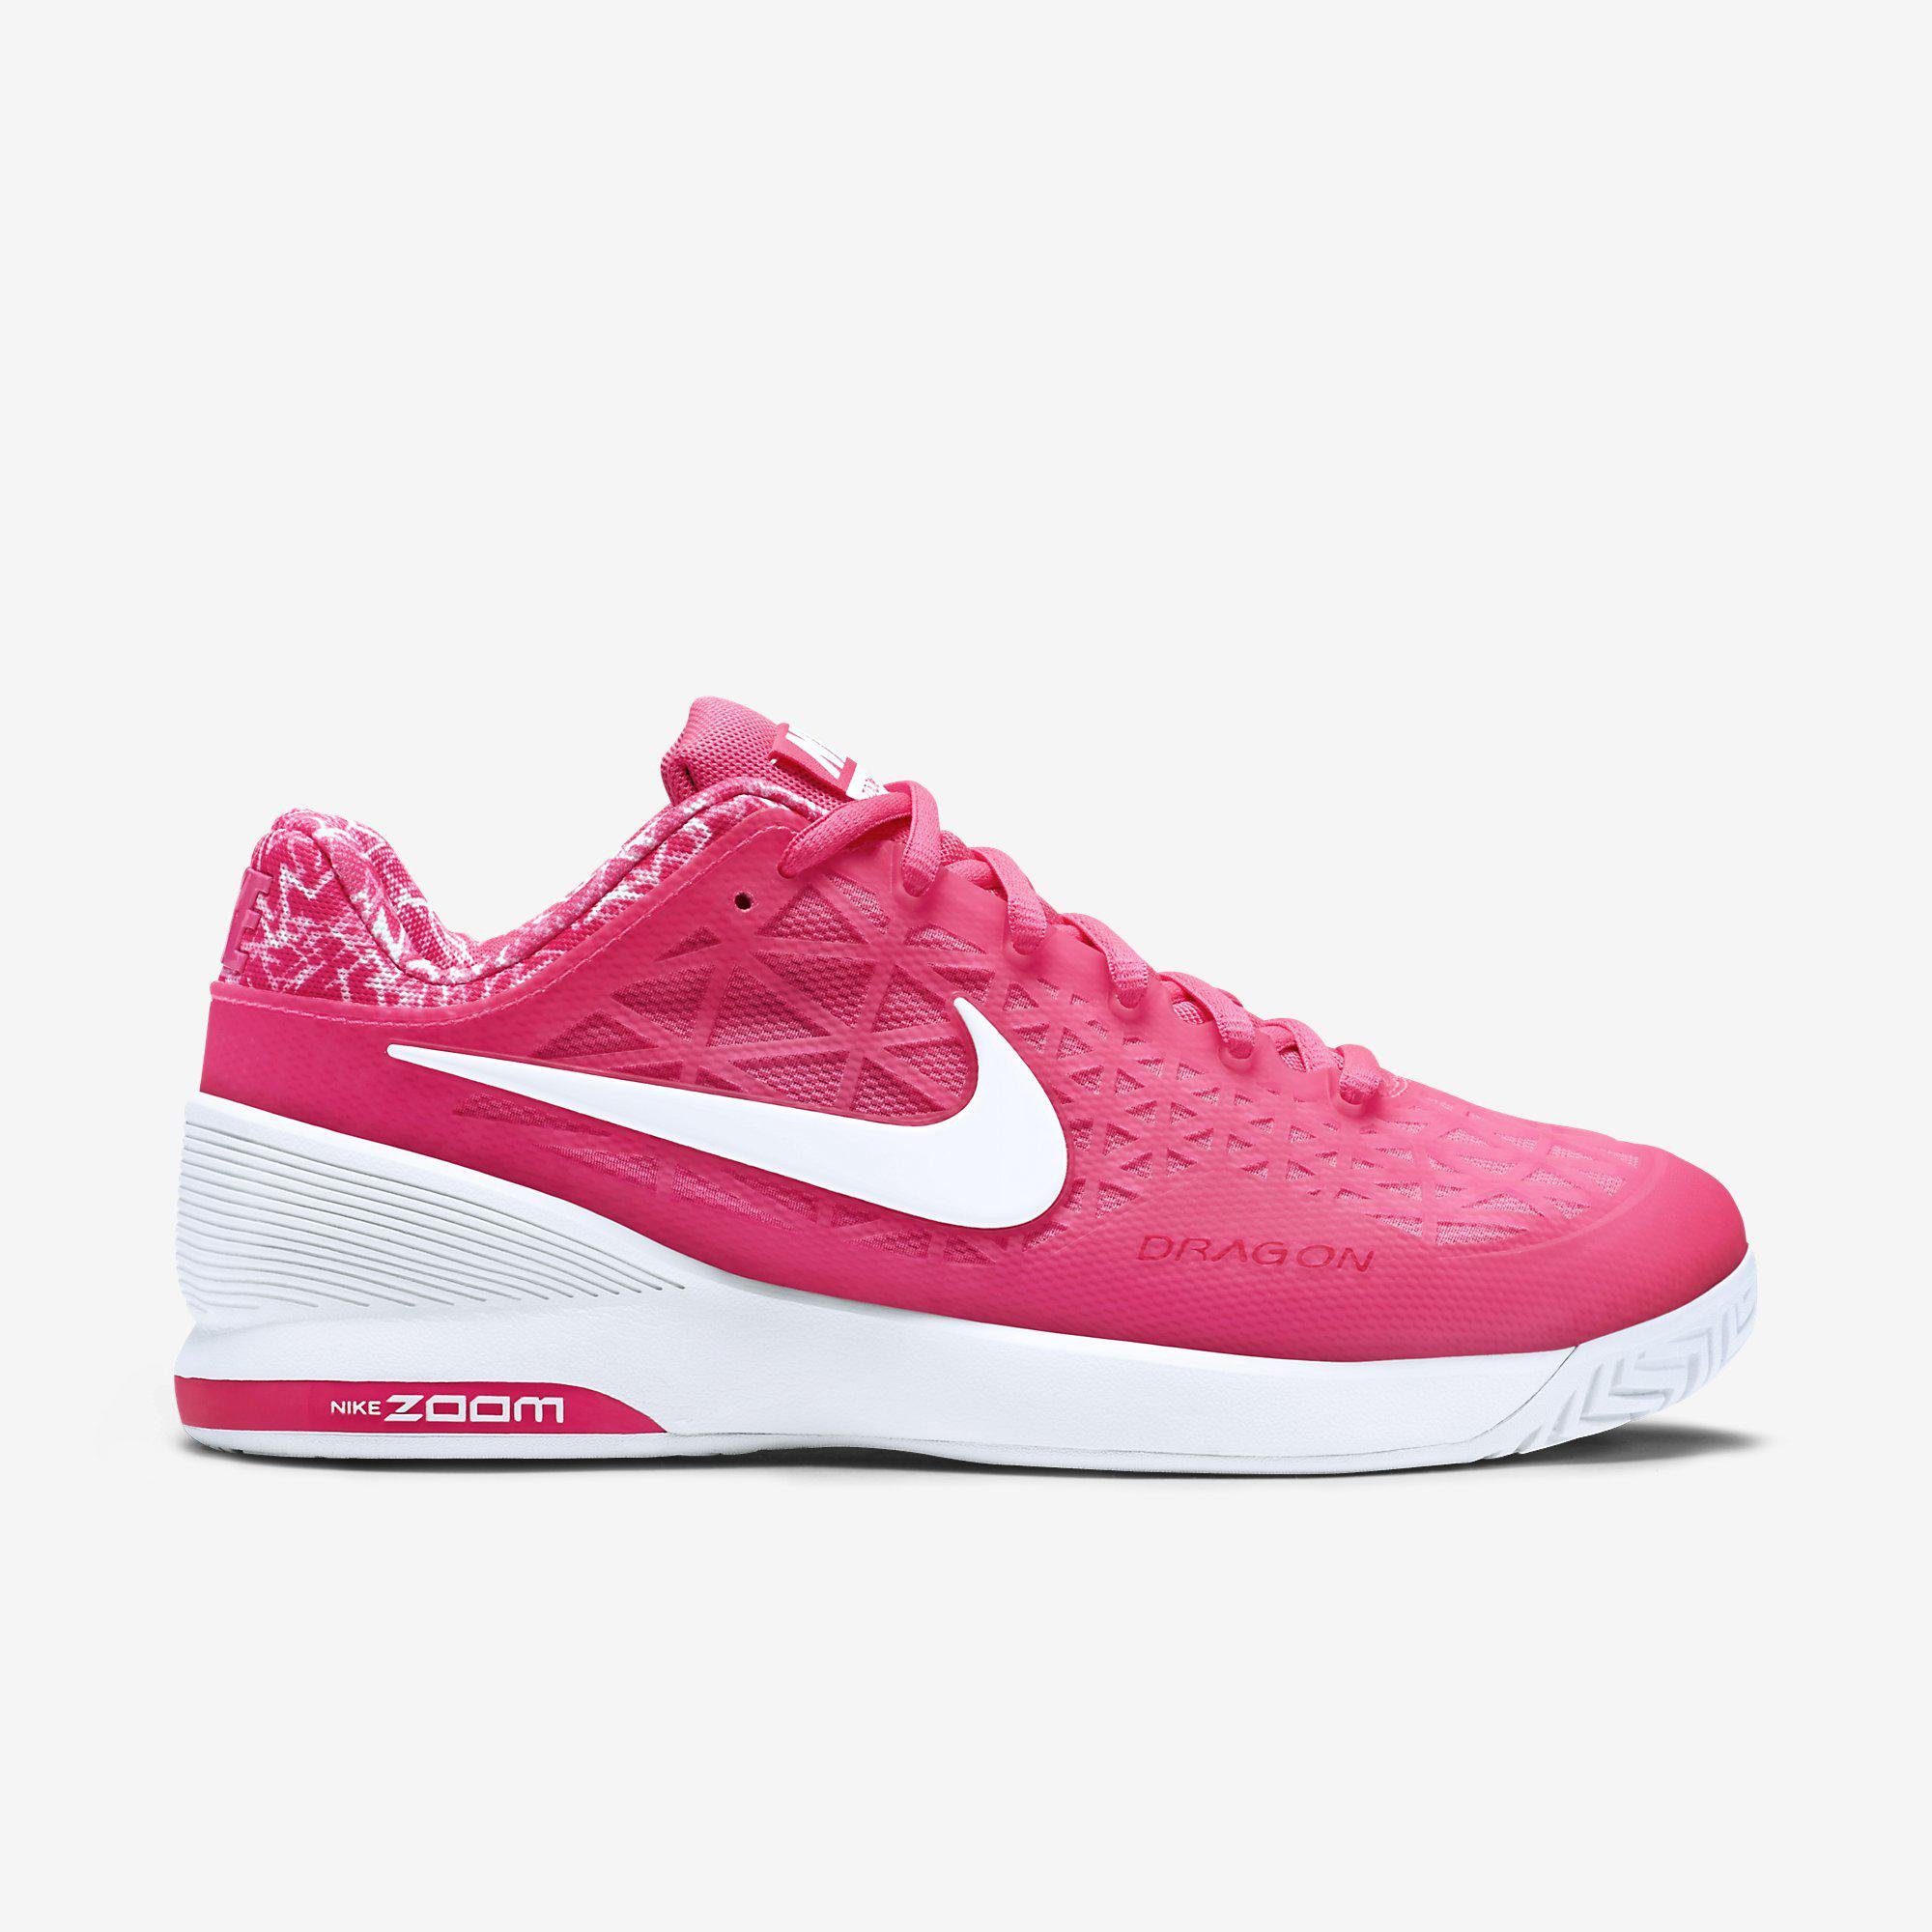 NIKE ZOOM CAGE 2 Pink Pow/Classic Charcoal/White